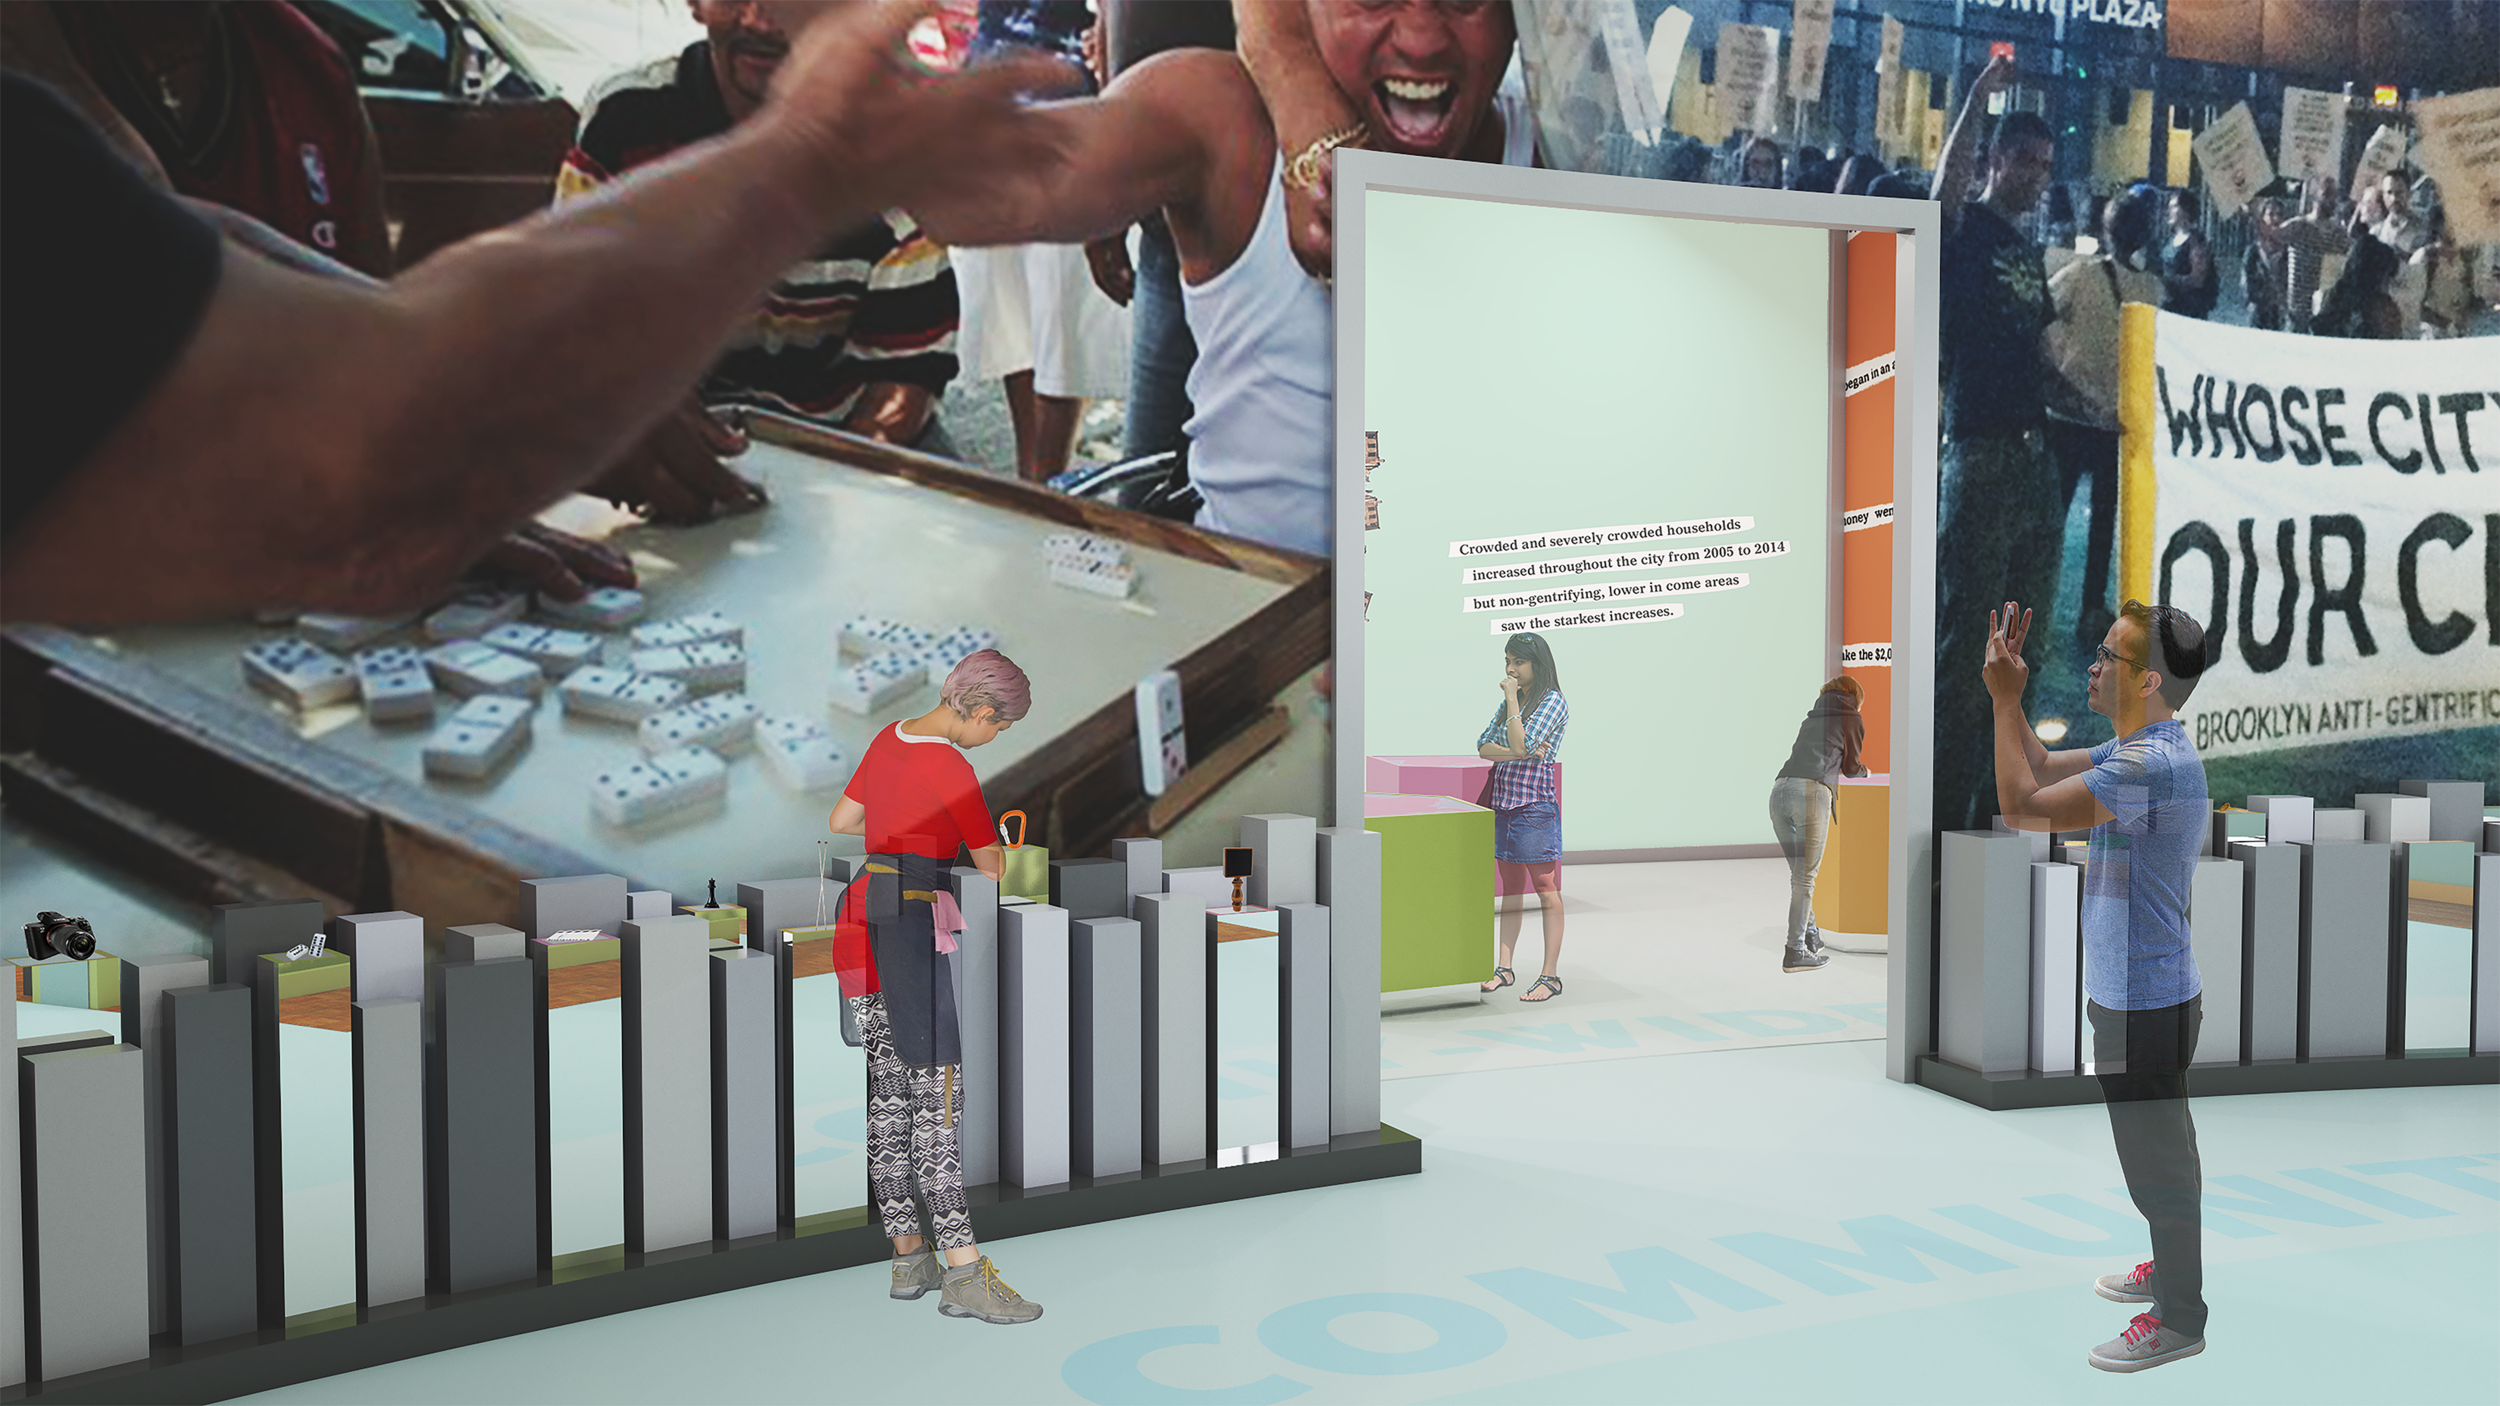 The community spaces area contains large-scale video projection behind pedestals displaying objects related to New York City community spaces. Visitors touch wristbands to object pedestals to trigger video projection of the environment of the community that relates to the object they have selected. When a new projection is triggered, the visitor hears a longtime resident describe why that particular community is important to them as an extension of home.